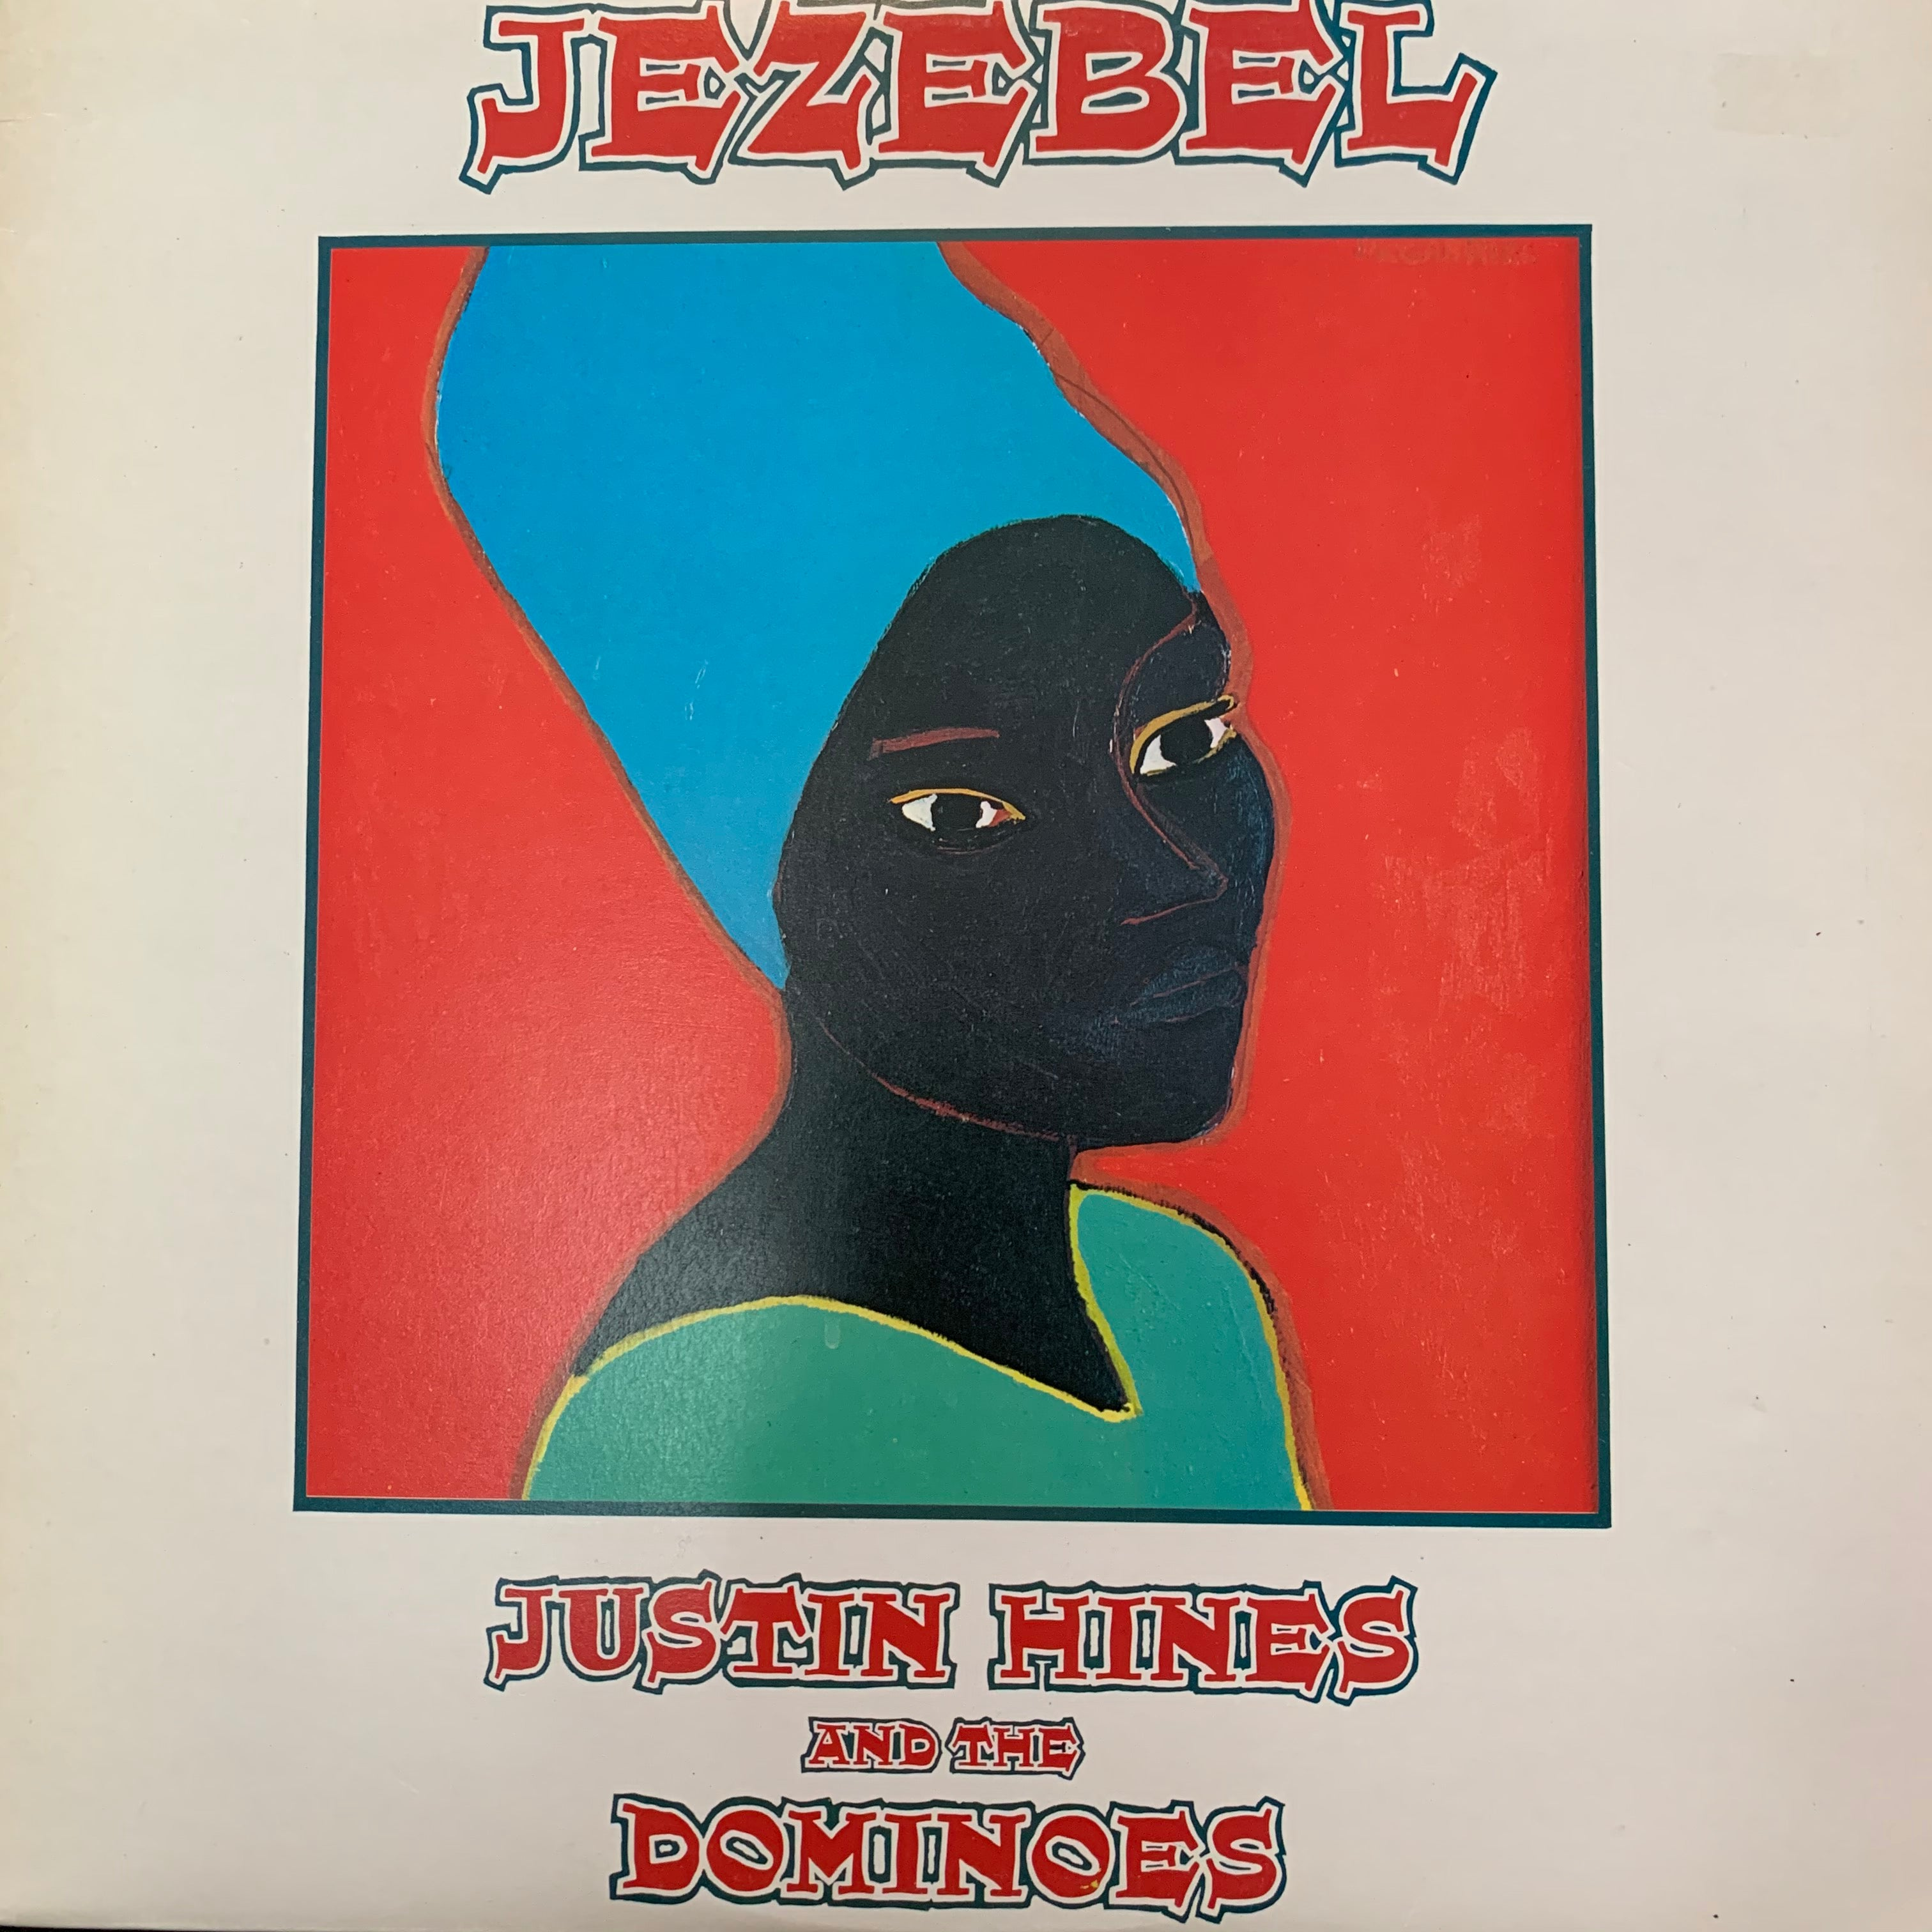 HINES JUSTIN & THE DOMINOES-JEZEBEL LP NM COVER VG+